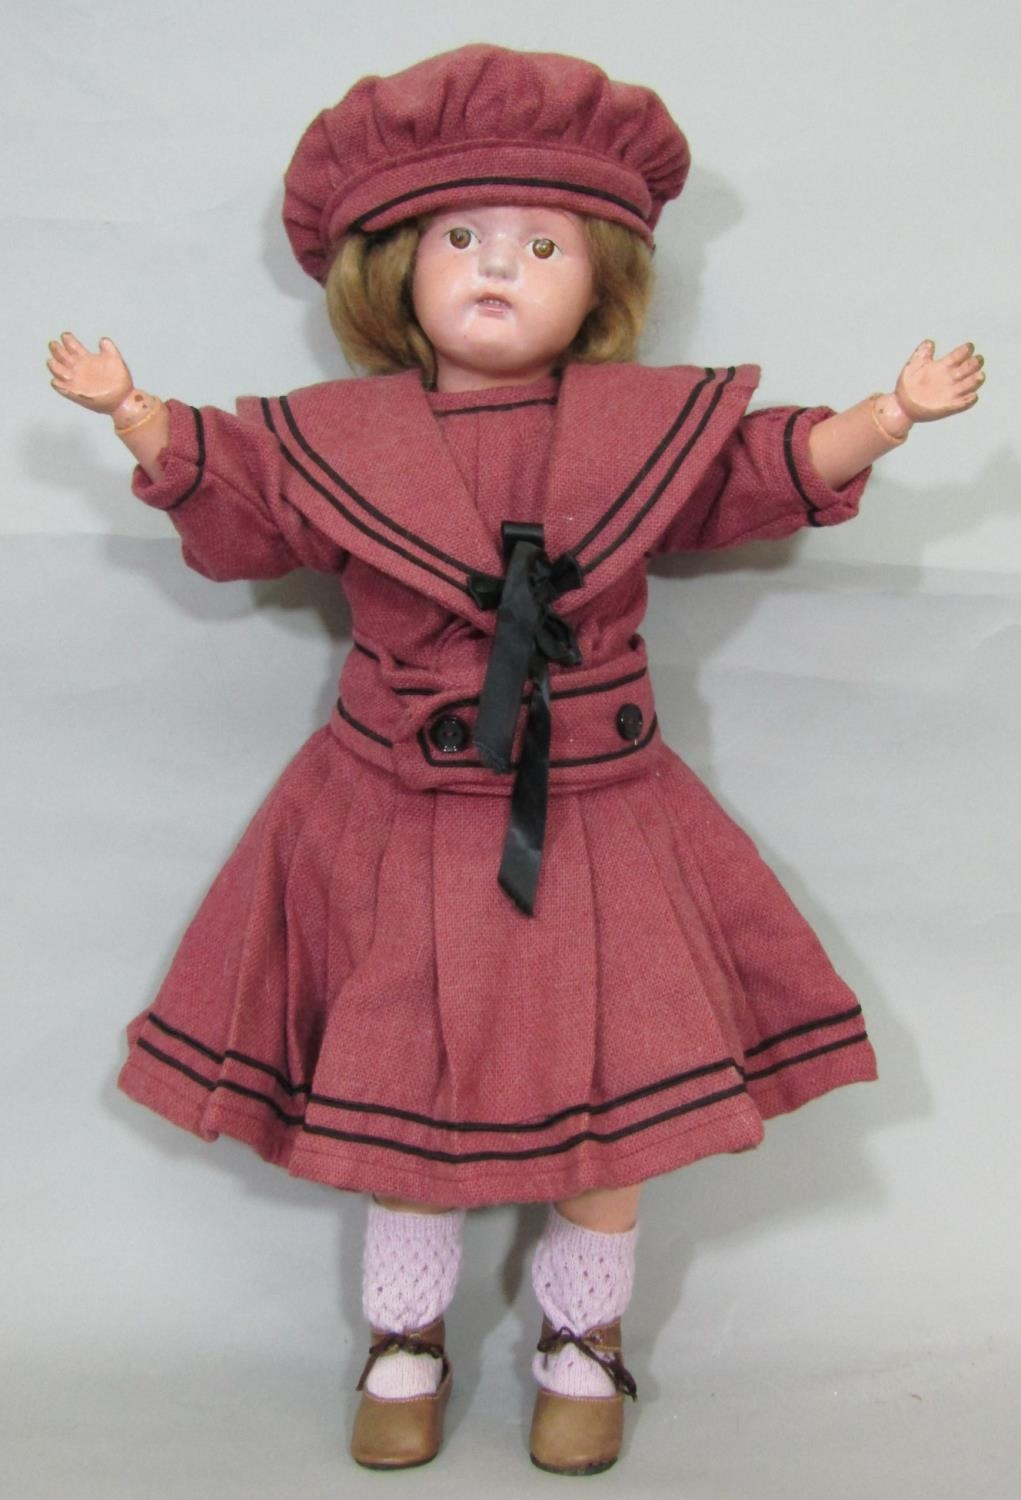 General Sale of Antiques - Day 1 to Include Collection of Vintage Dolls and Teddy Bears - 106 Lots